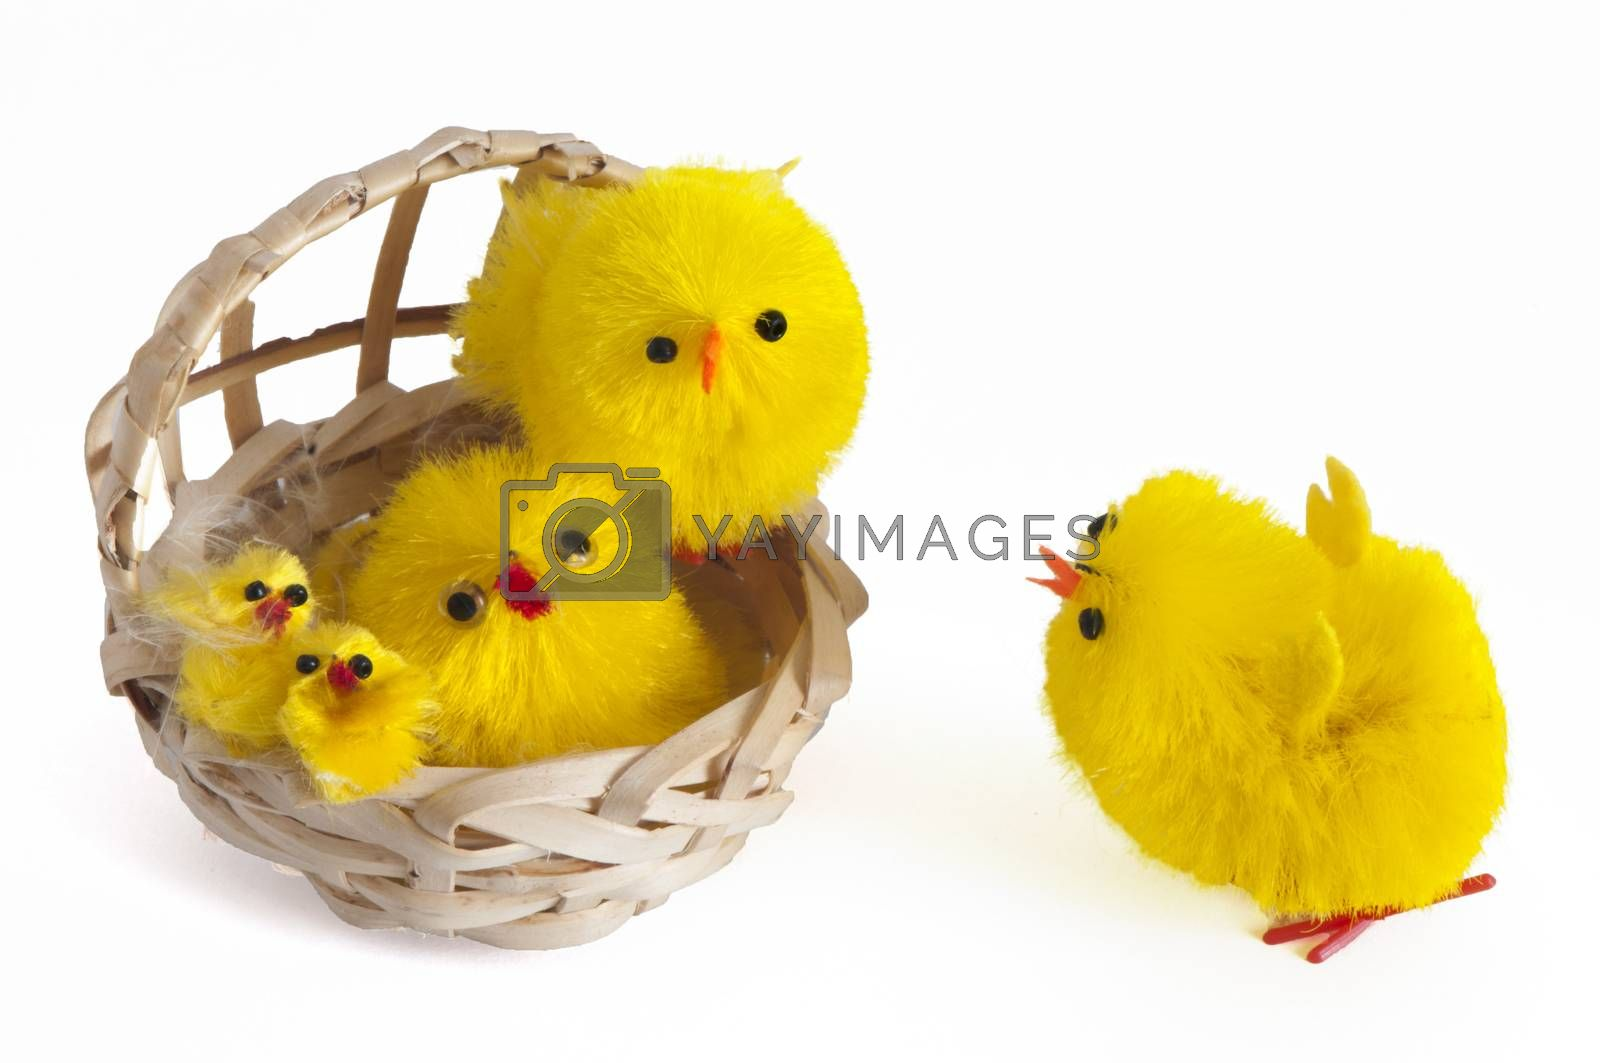 Royalty free image of a Easter decorations by carla720